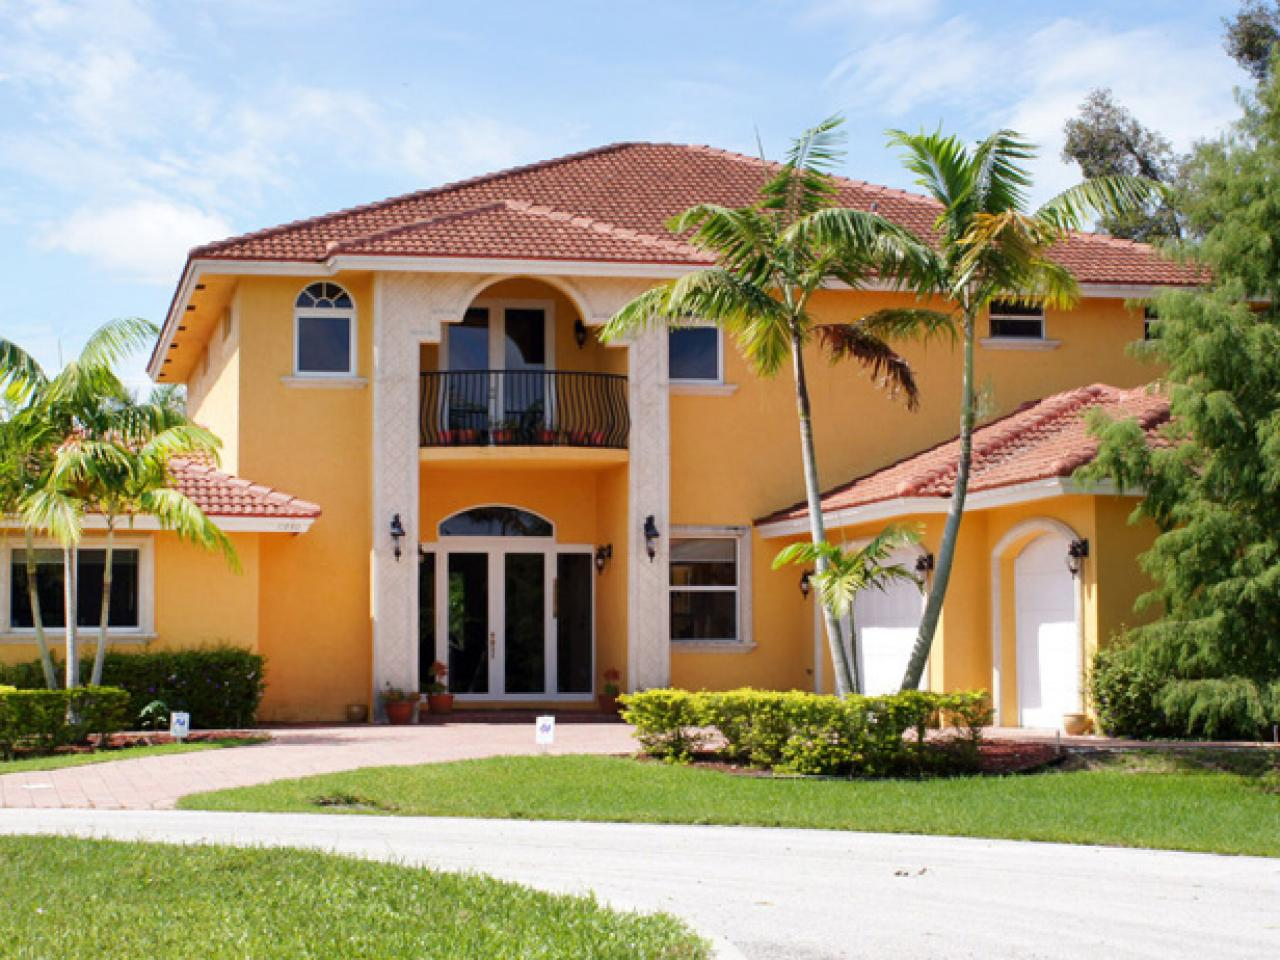 Interior Exterior house painting services